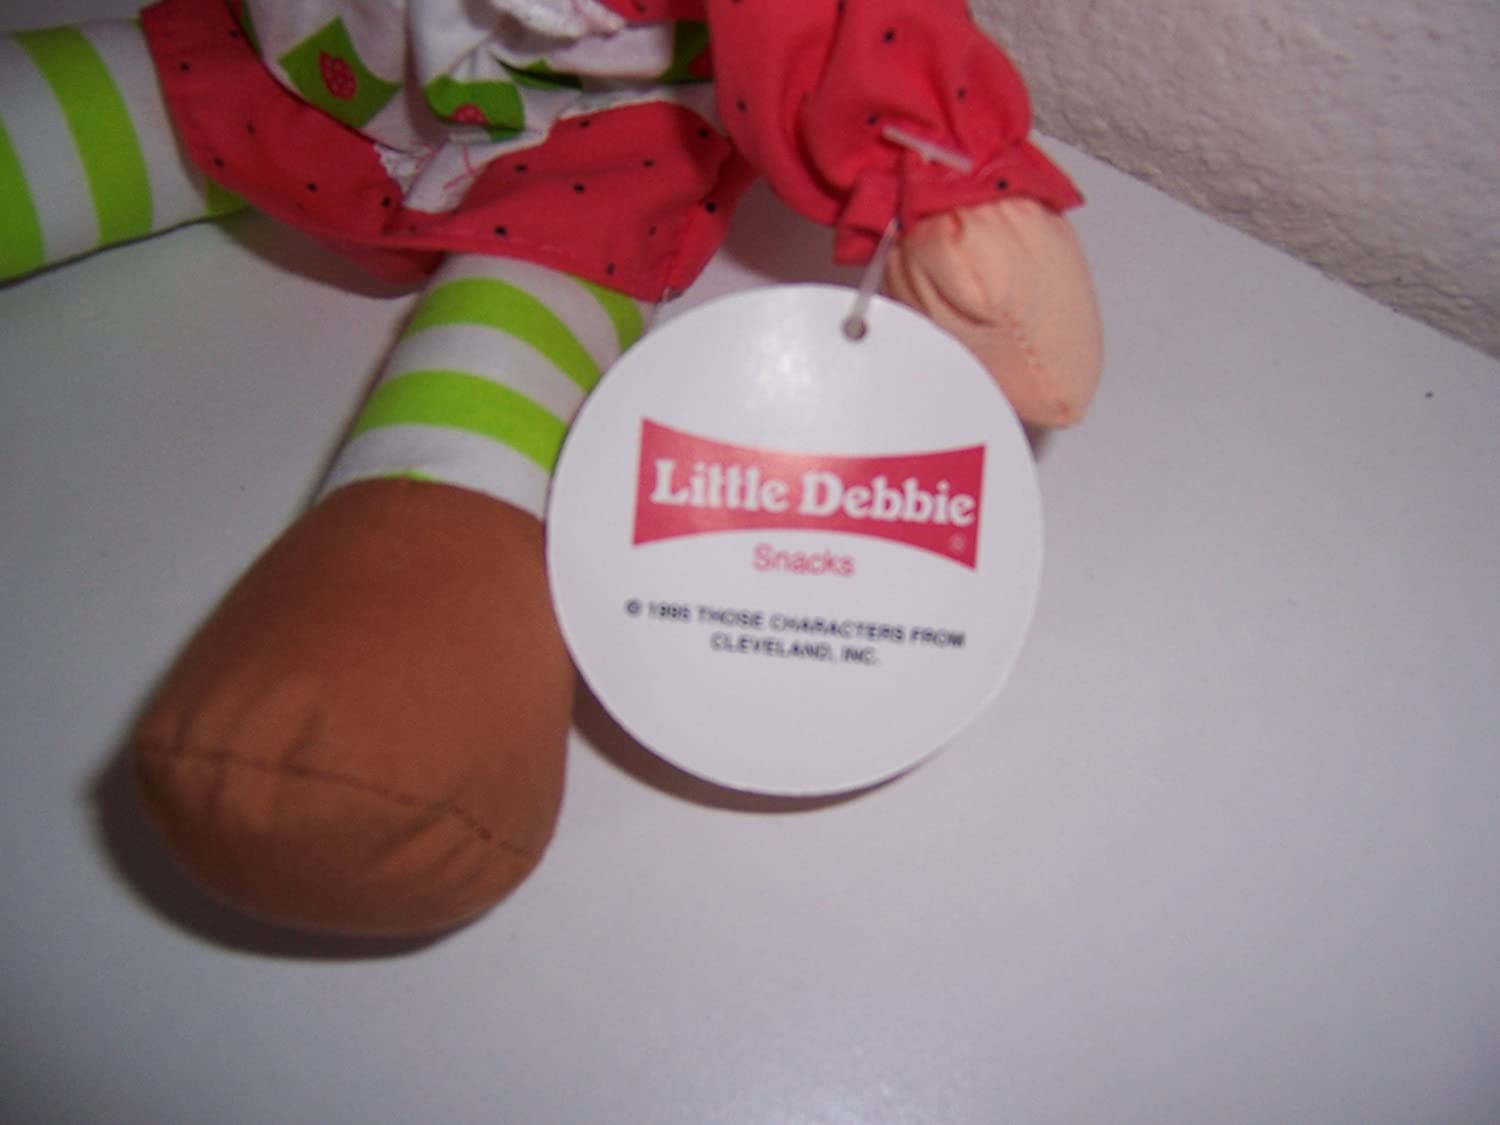 Little Debbie Brand Strawberry Shortcake Collectible Doll Little Debbie Snacks Co. 1995